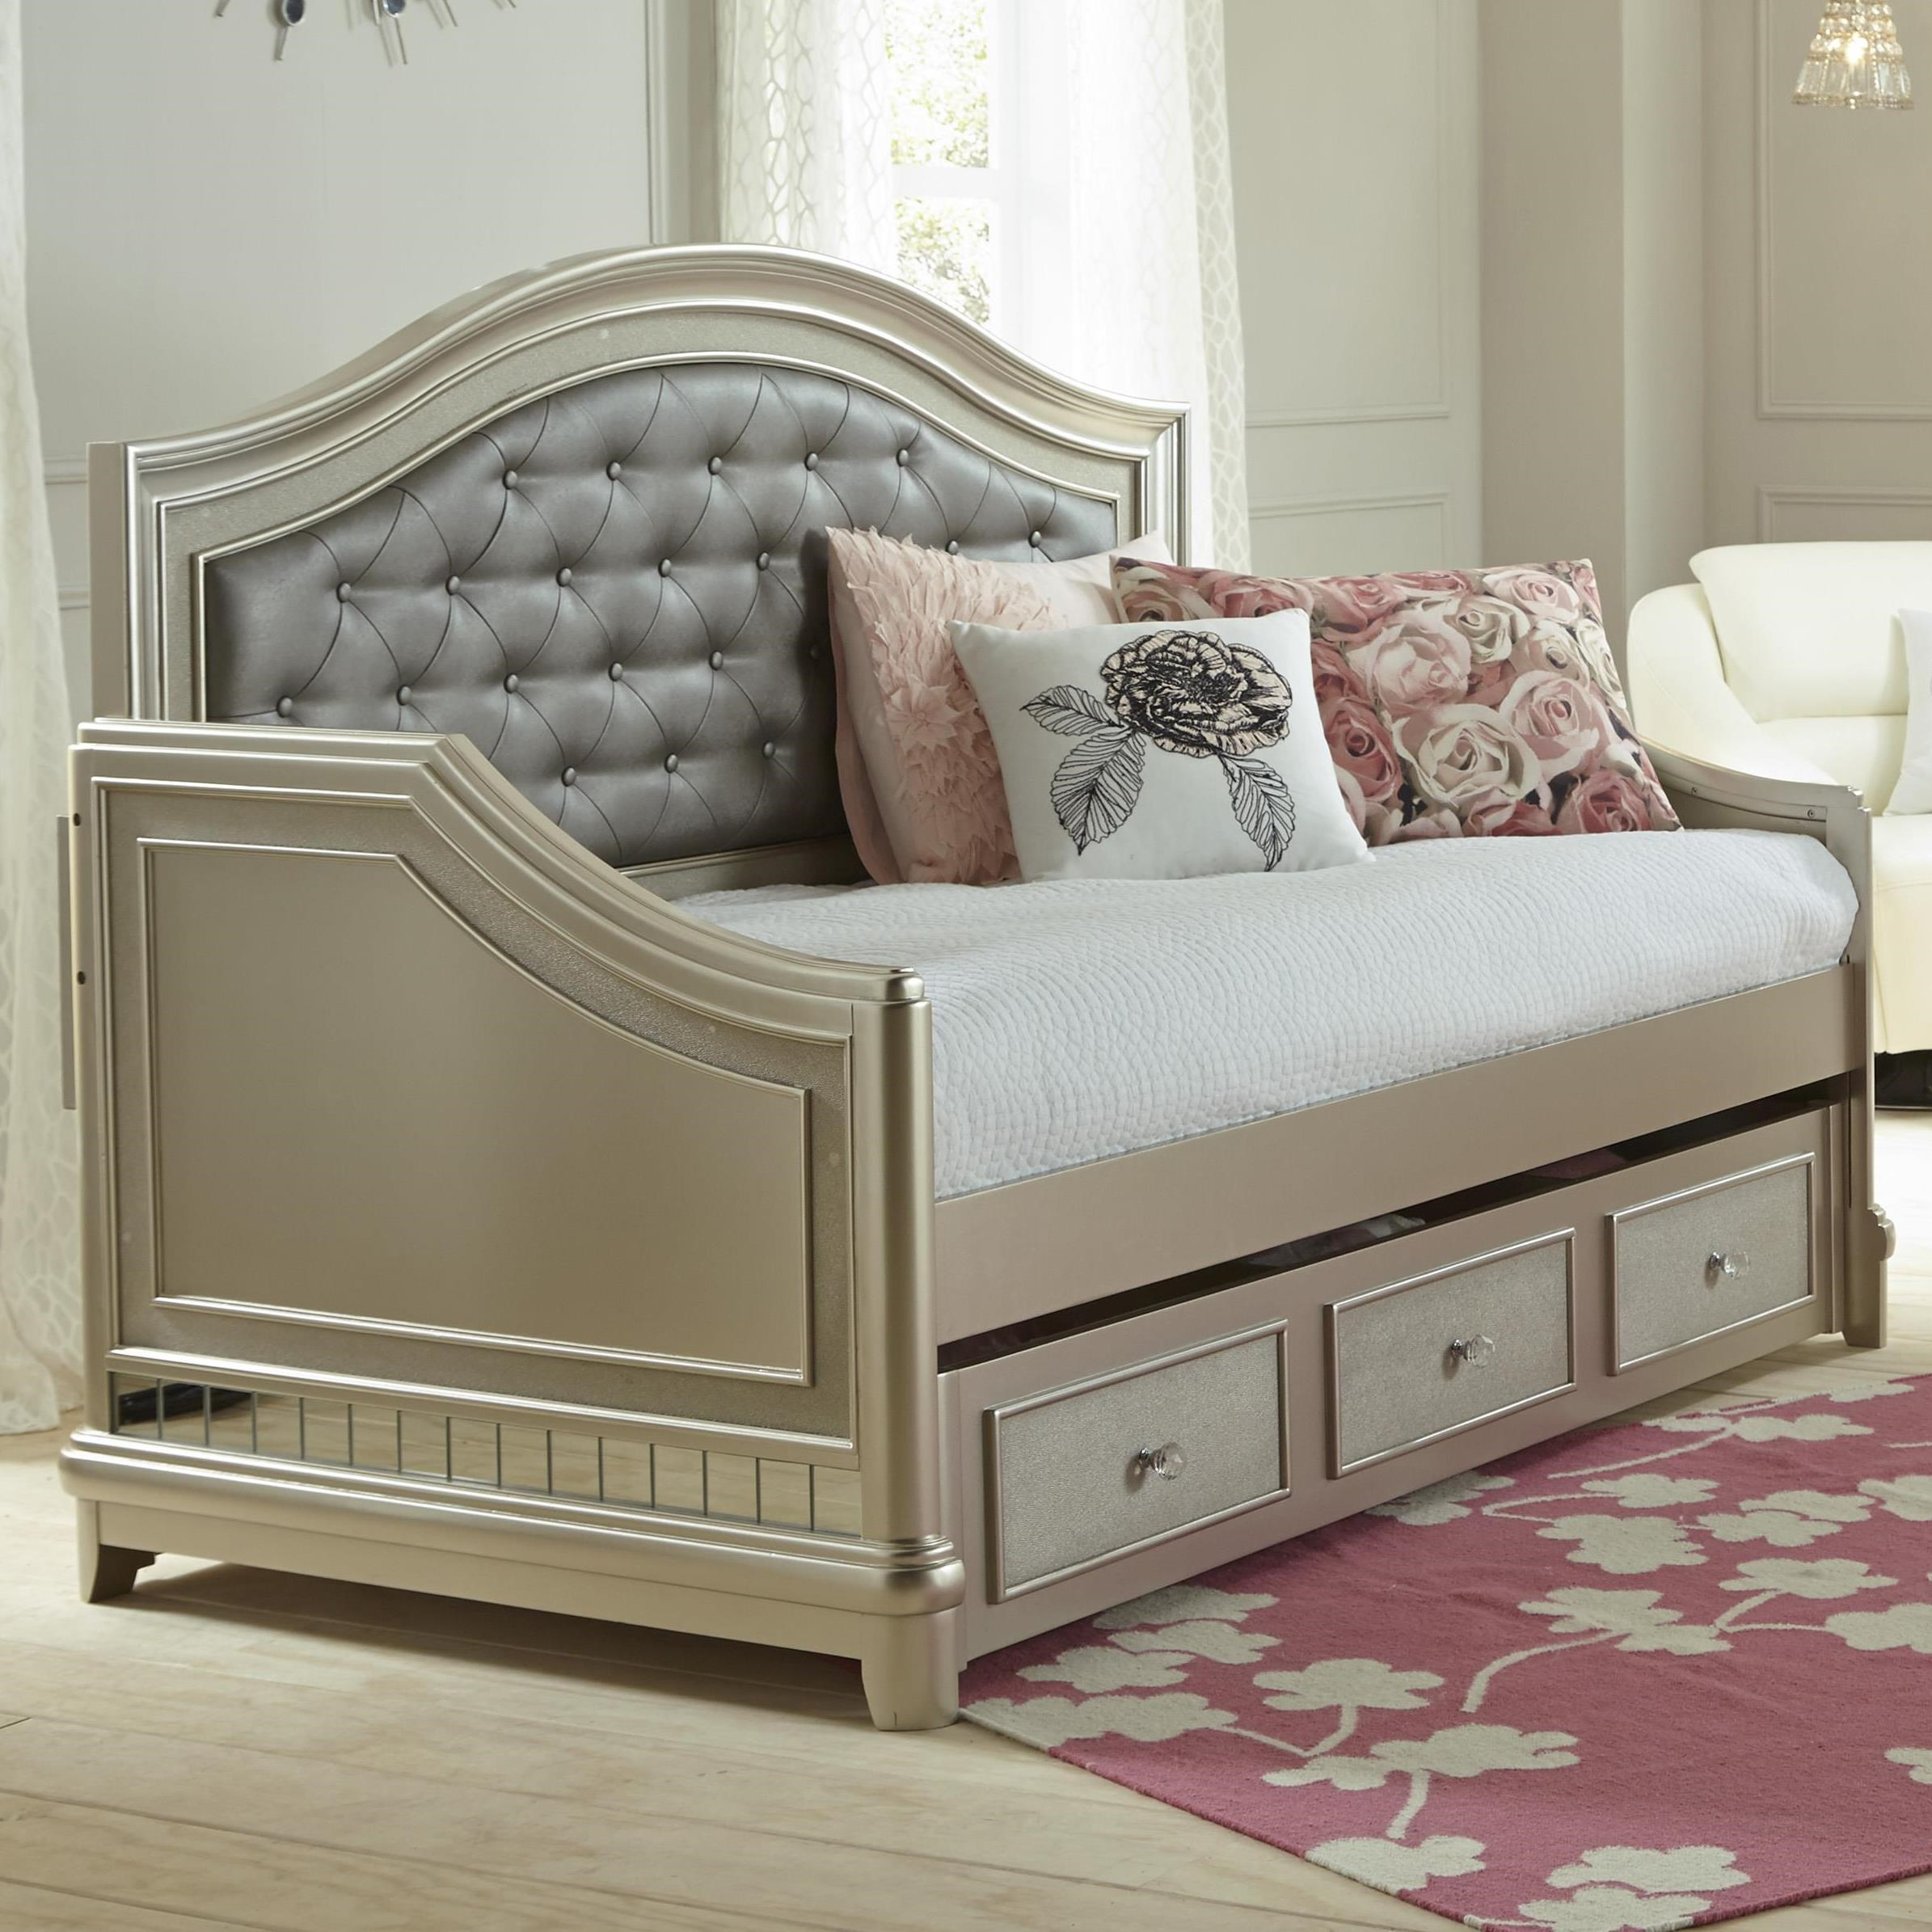 Samuel Lawrence Lil Diva Tufted Daybed W/ Trundle   Miskelly Furniture    Daybeds